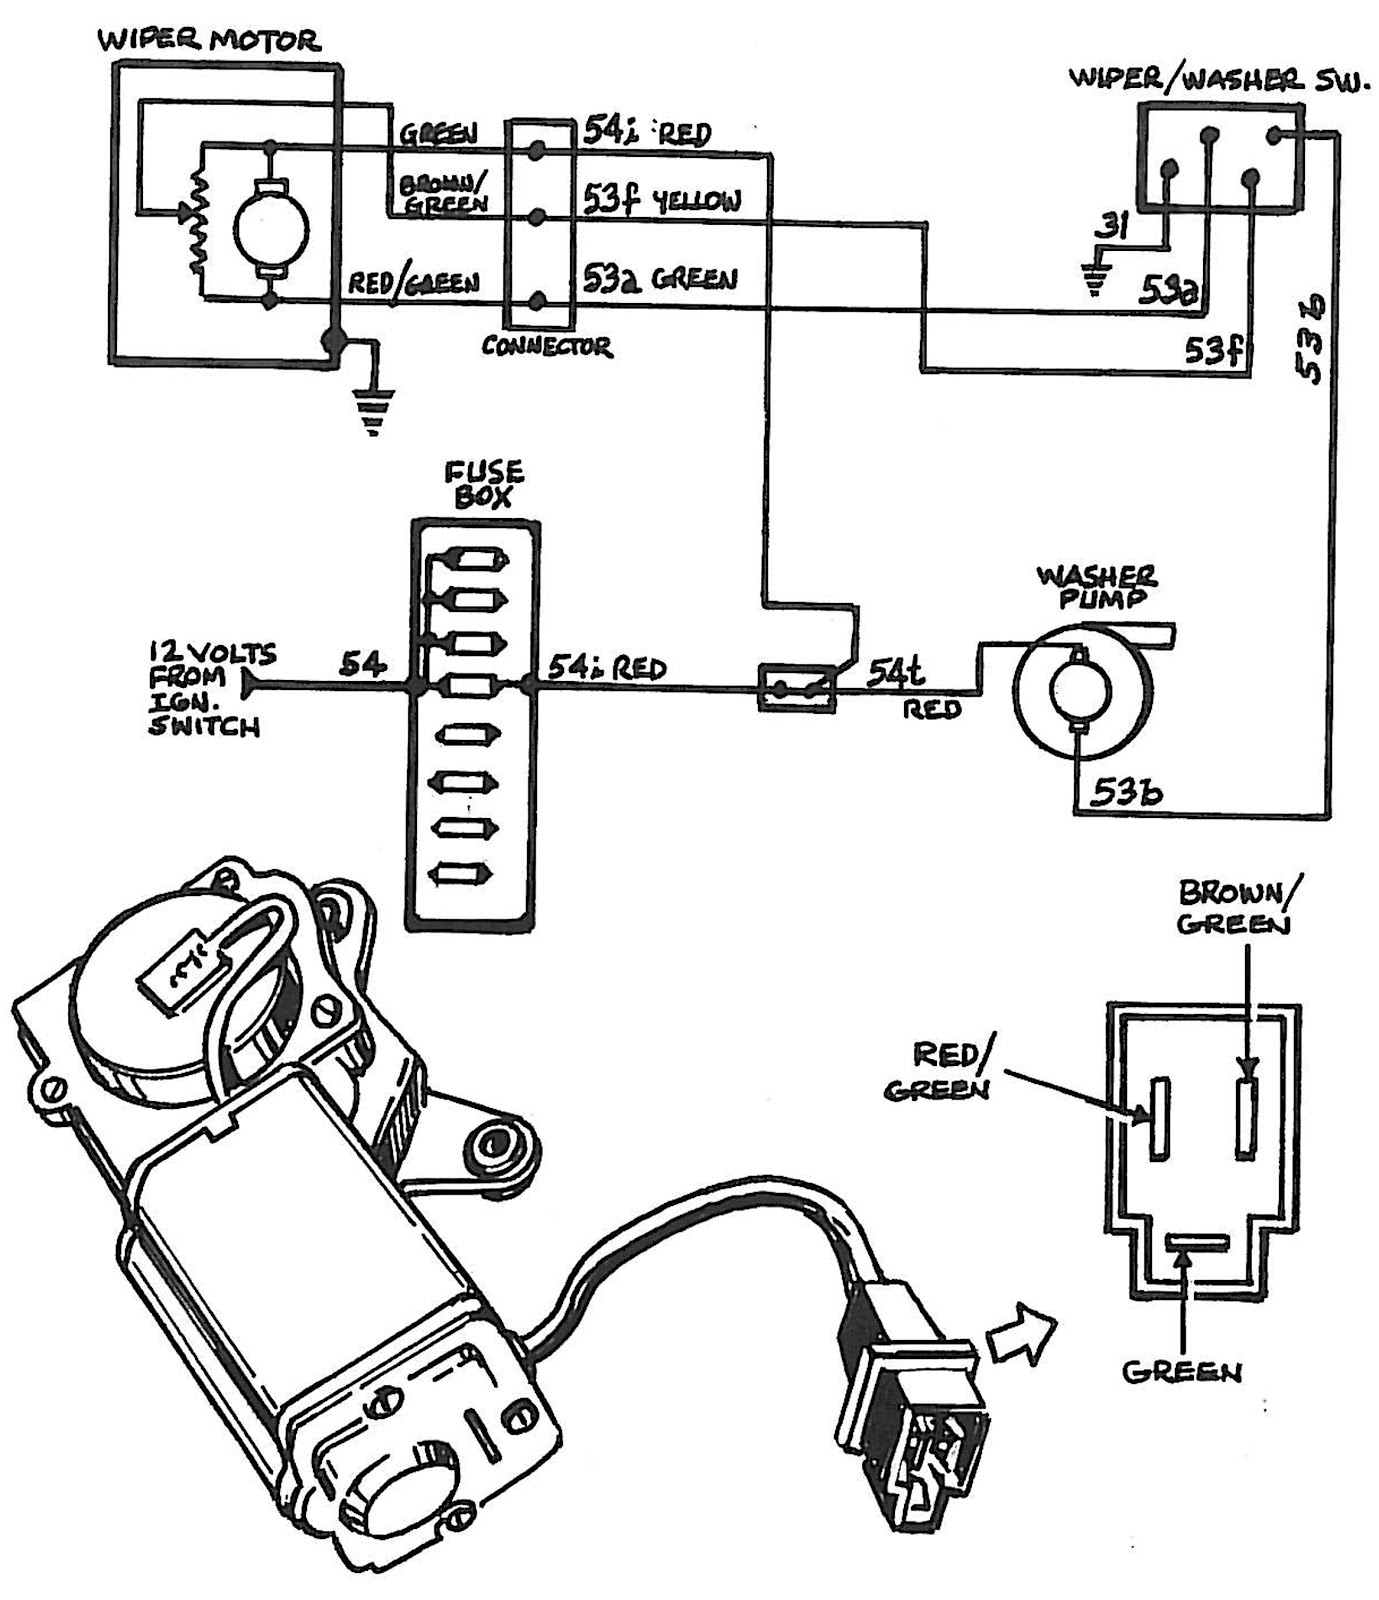 S25C 112021509580 saab journal early windshield wiper motor rebuild wiper motor wiring diagram for 1965 gto at mifinder.co